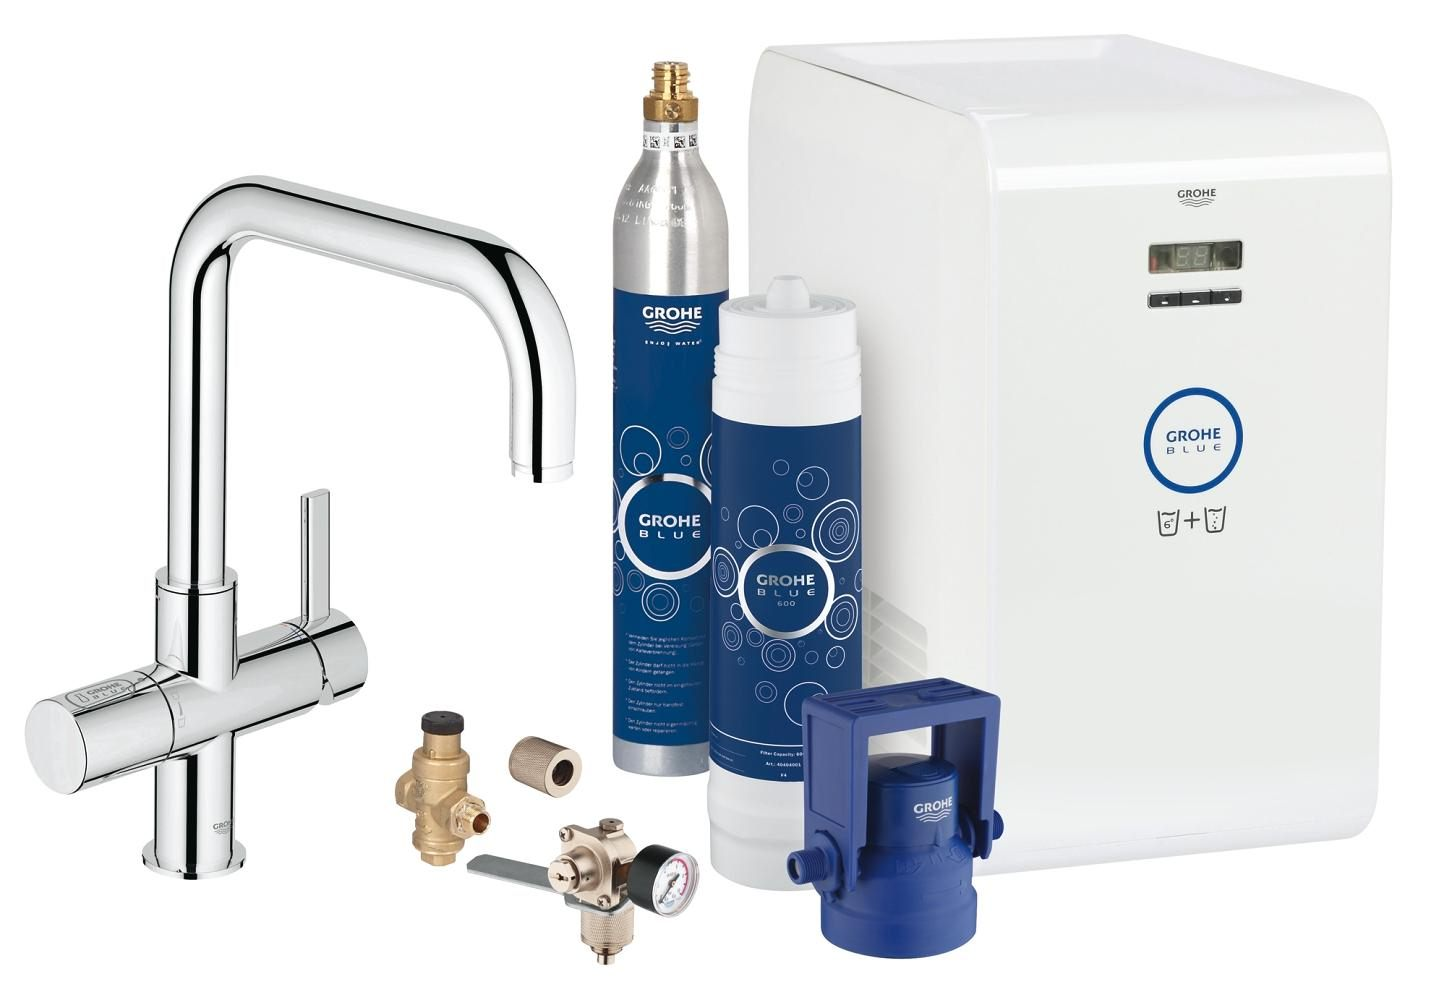 Grohe Blue Professional Kitchen Sink Mixer Tap With Starter Kit-31324001